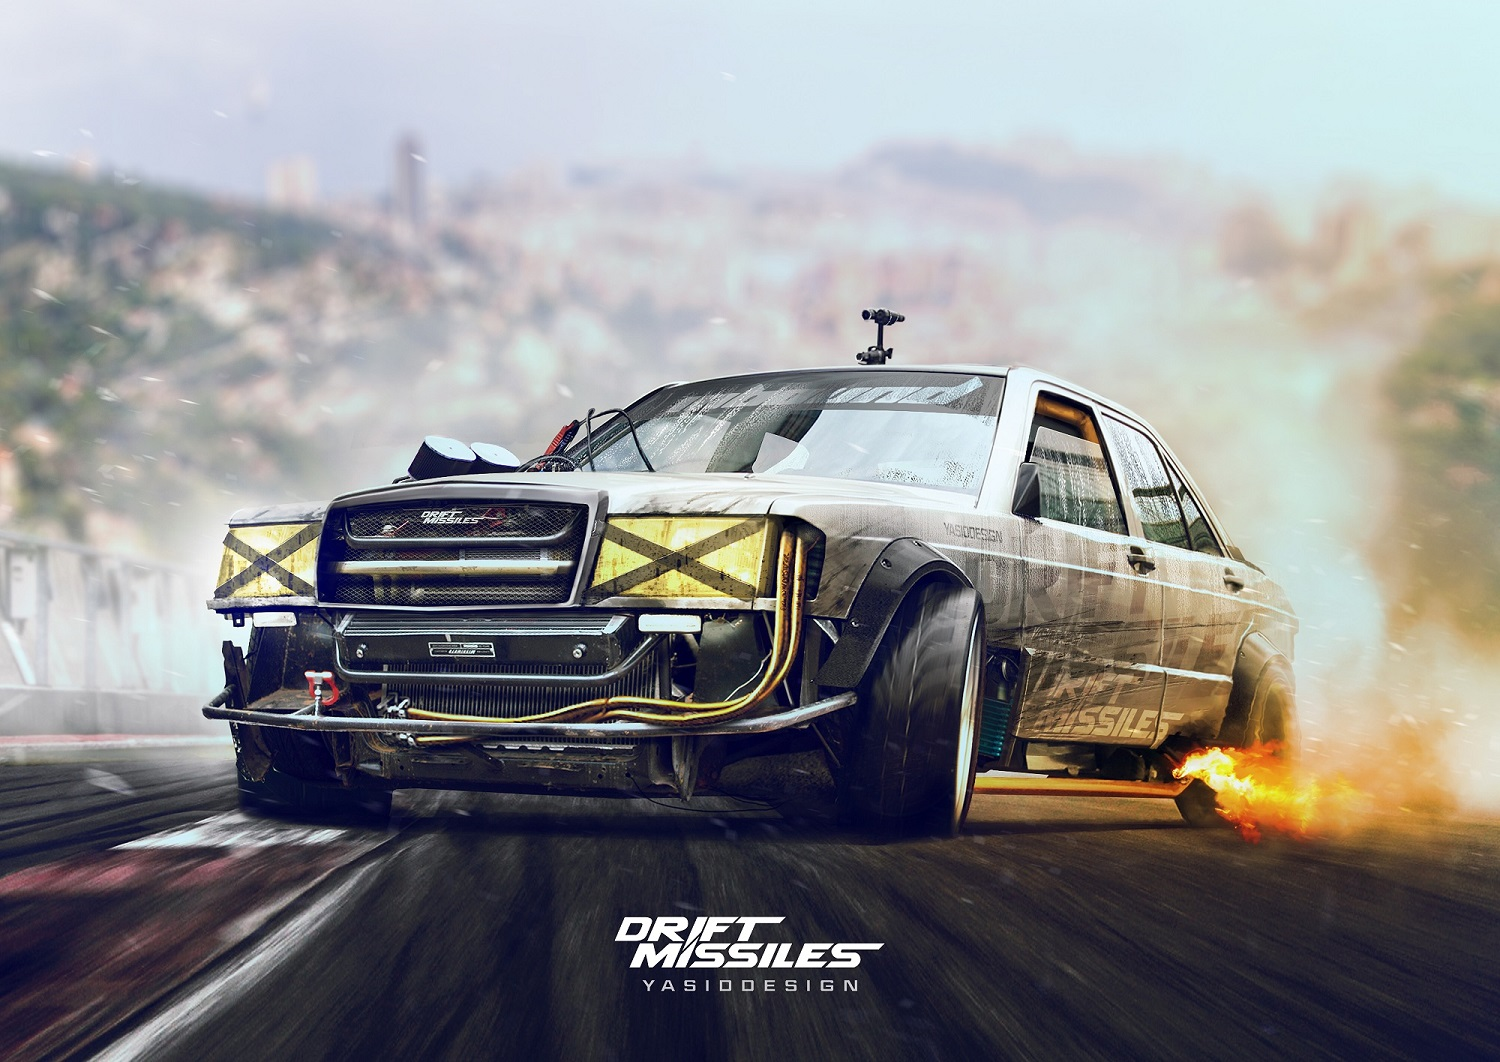 Rally Car Wallpapers Free Mercedes W202 Drift Missile Print Yasiddesign